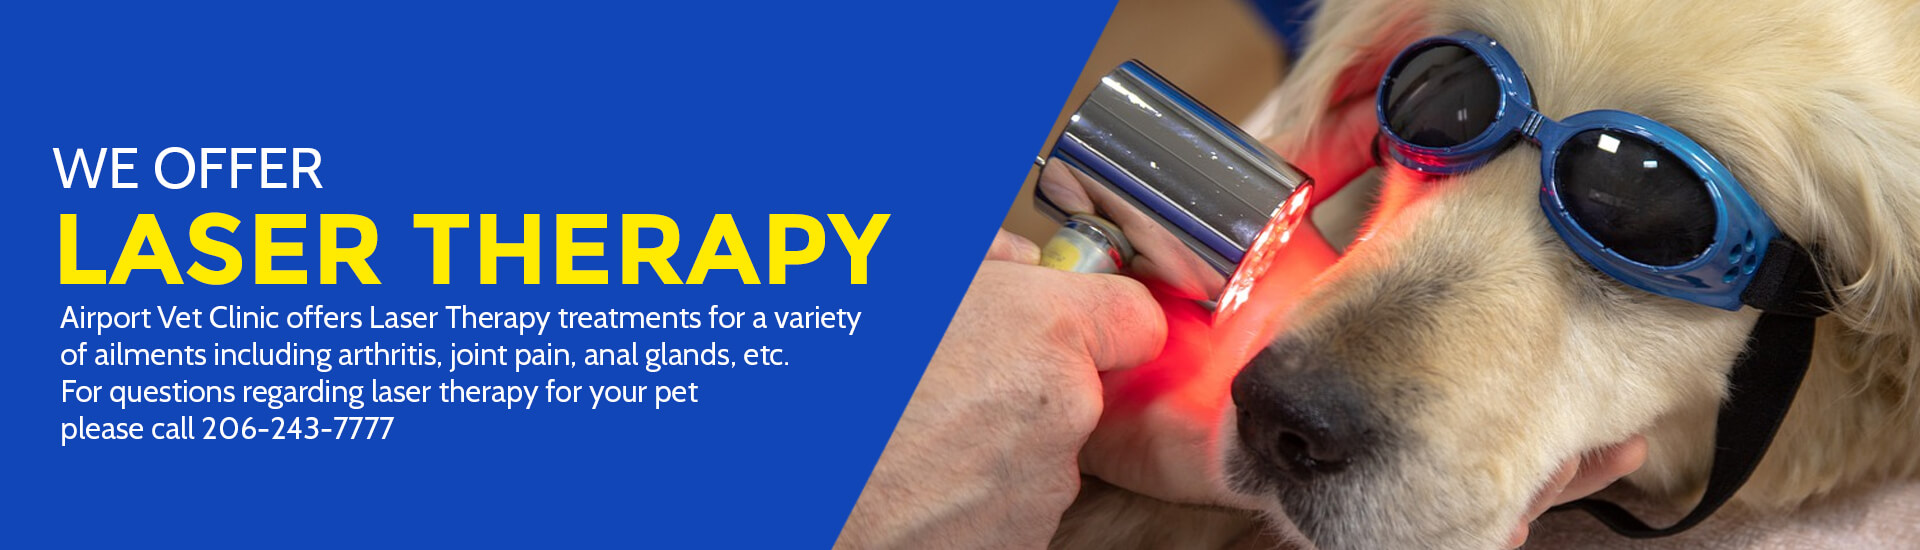 Laser-Therapy-Slider